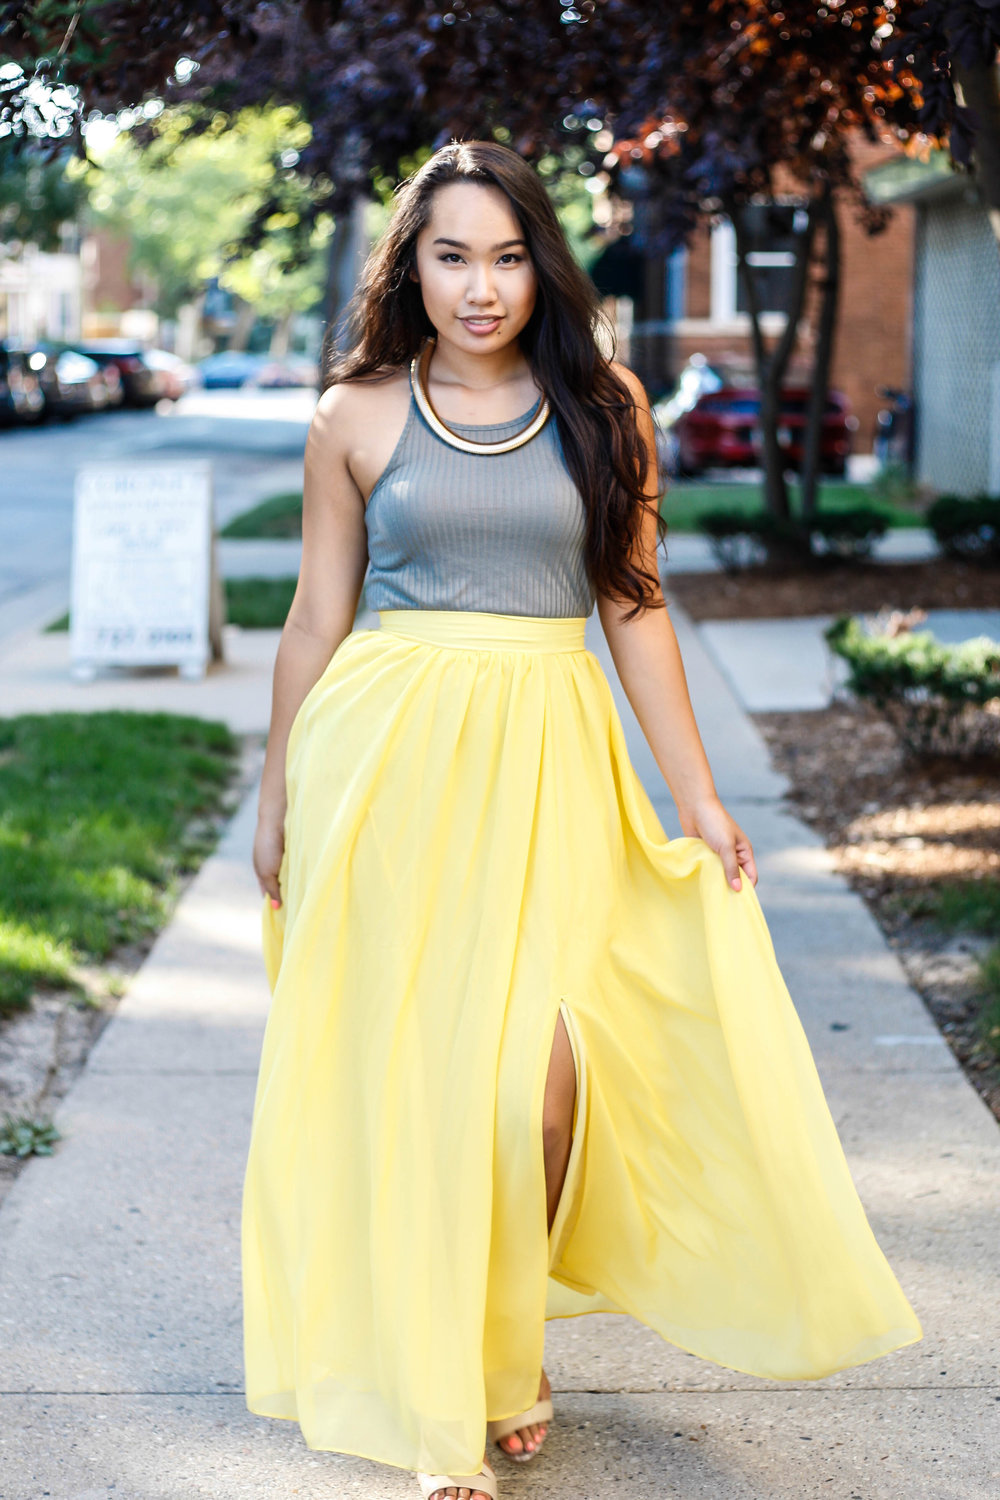 A flowy yellow maxi skirt makes the perfect contrast against the fall leaves.